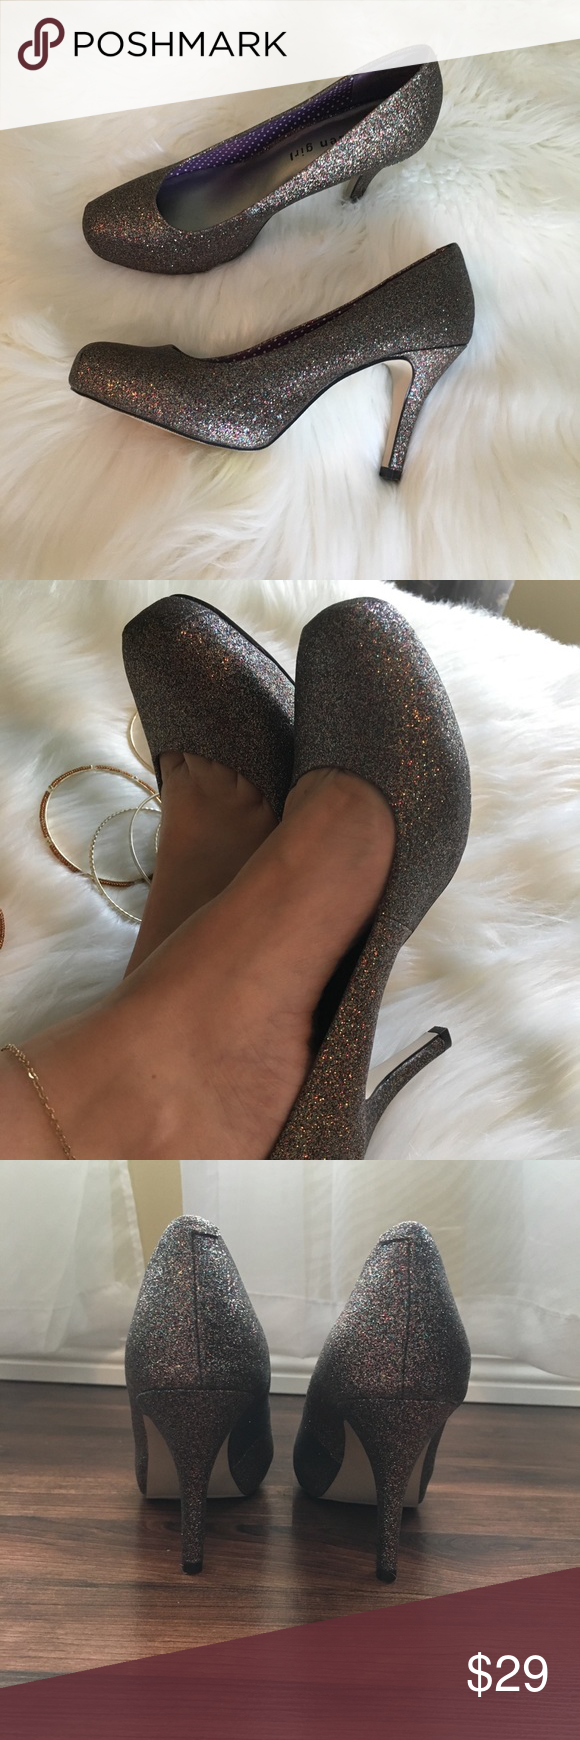 9d108b2980 I just added this listing on Poshmark: Madden Girl pumps. #shopmycloset # poshmark #fashion #shopping #style #forsale #Madden Girl #Shoes